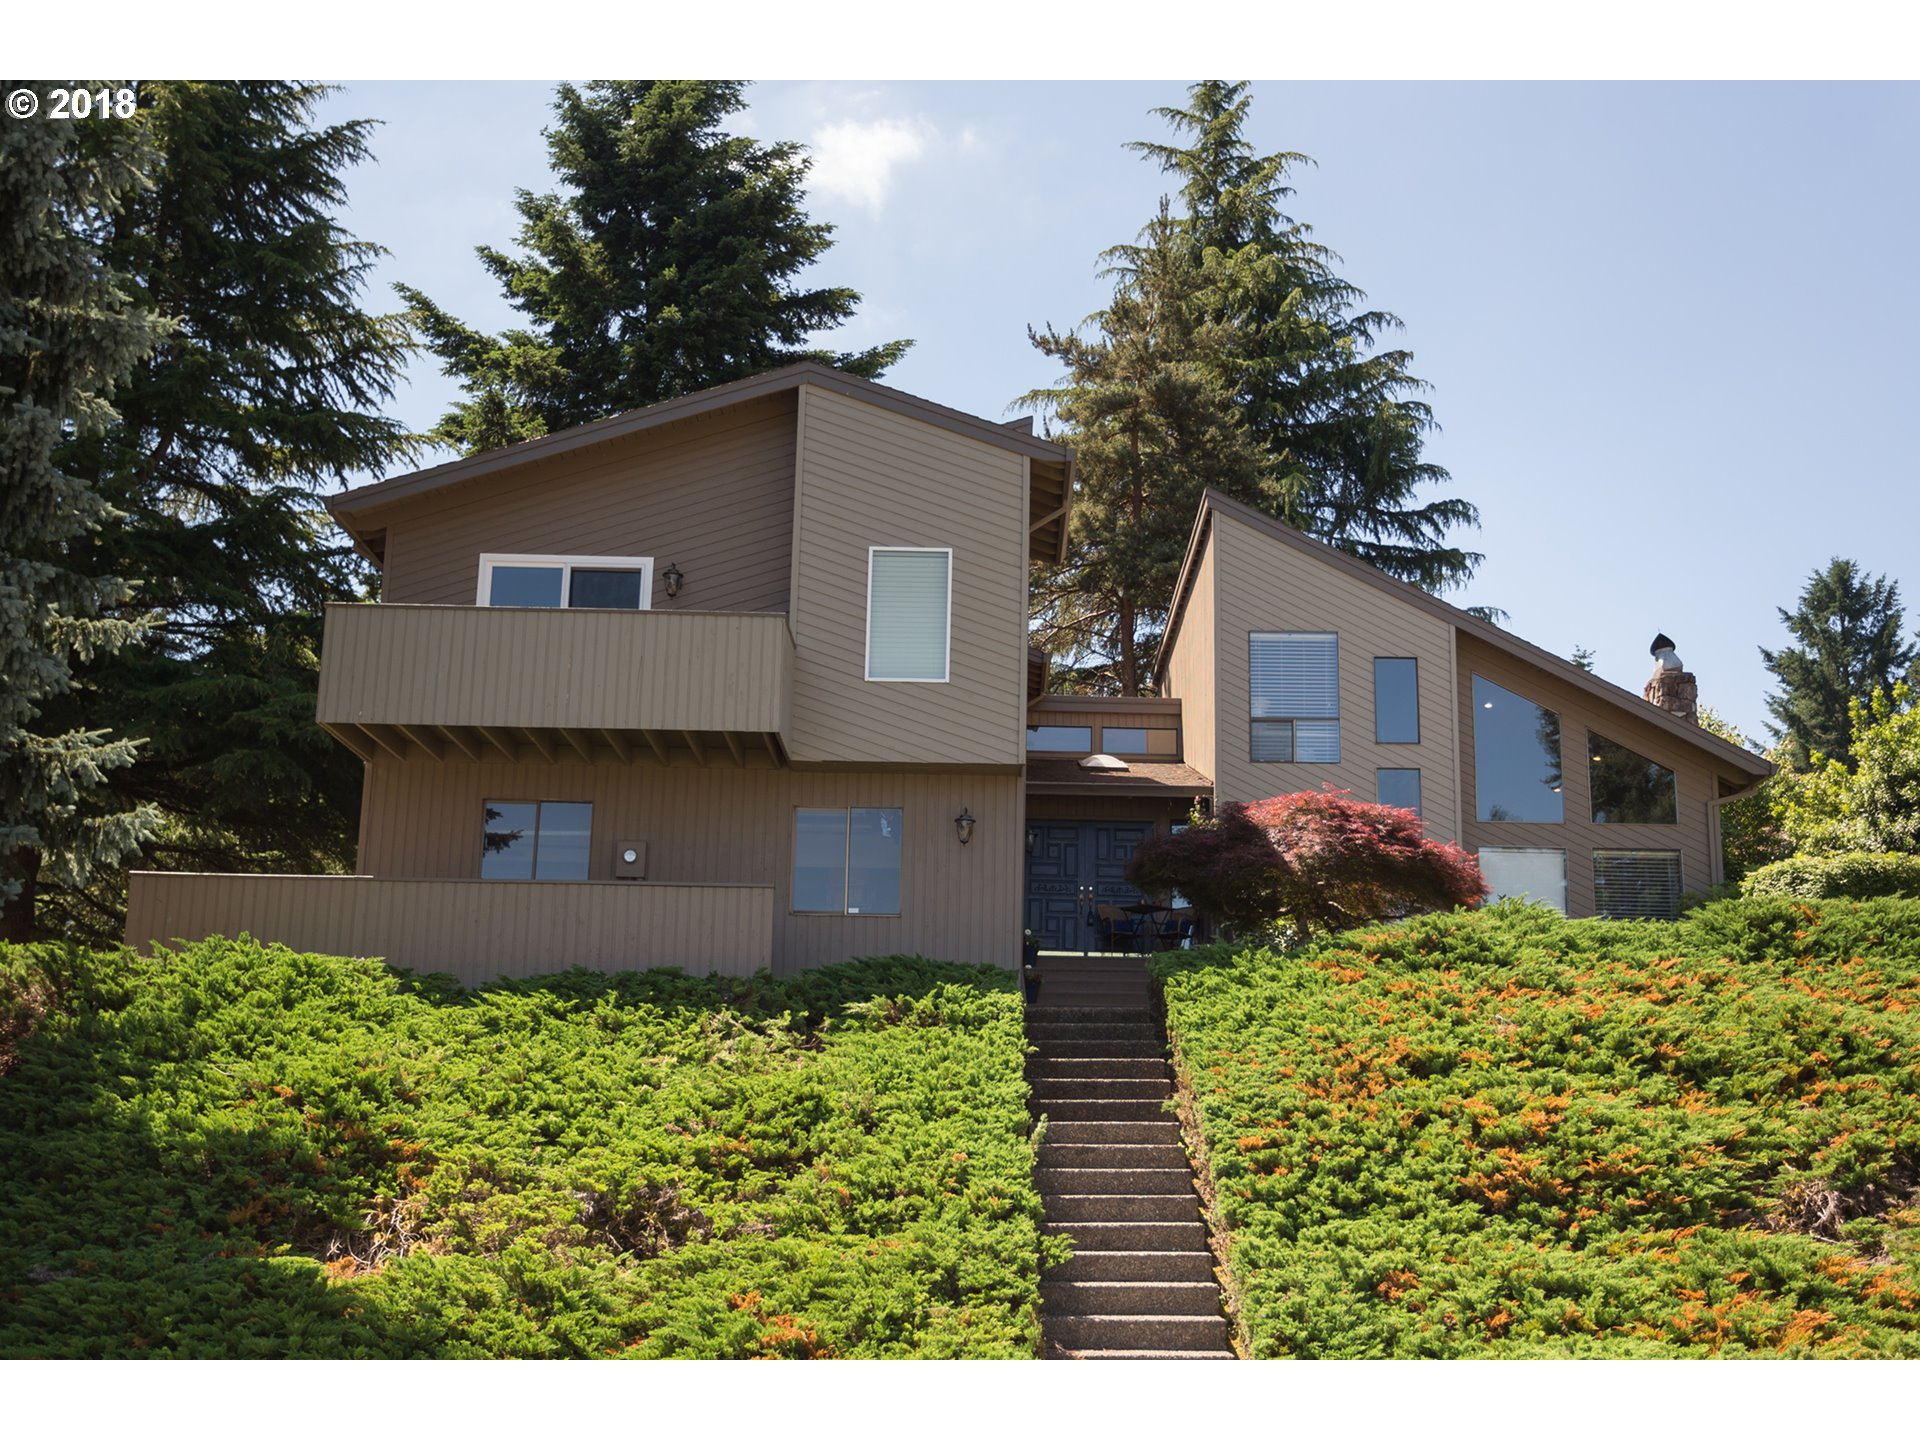 2336 ATHENA RD, West Linn, OR 97068